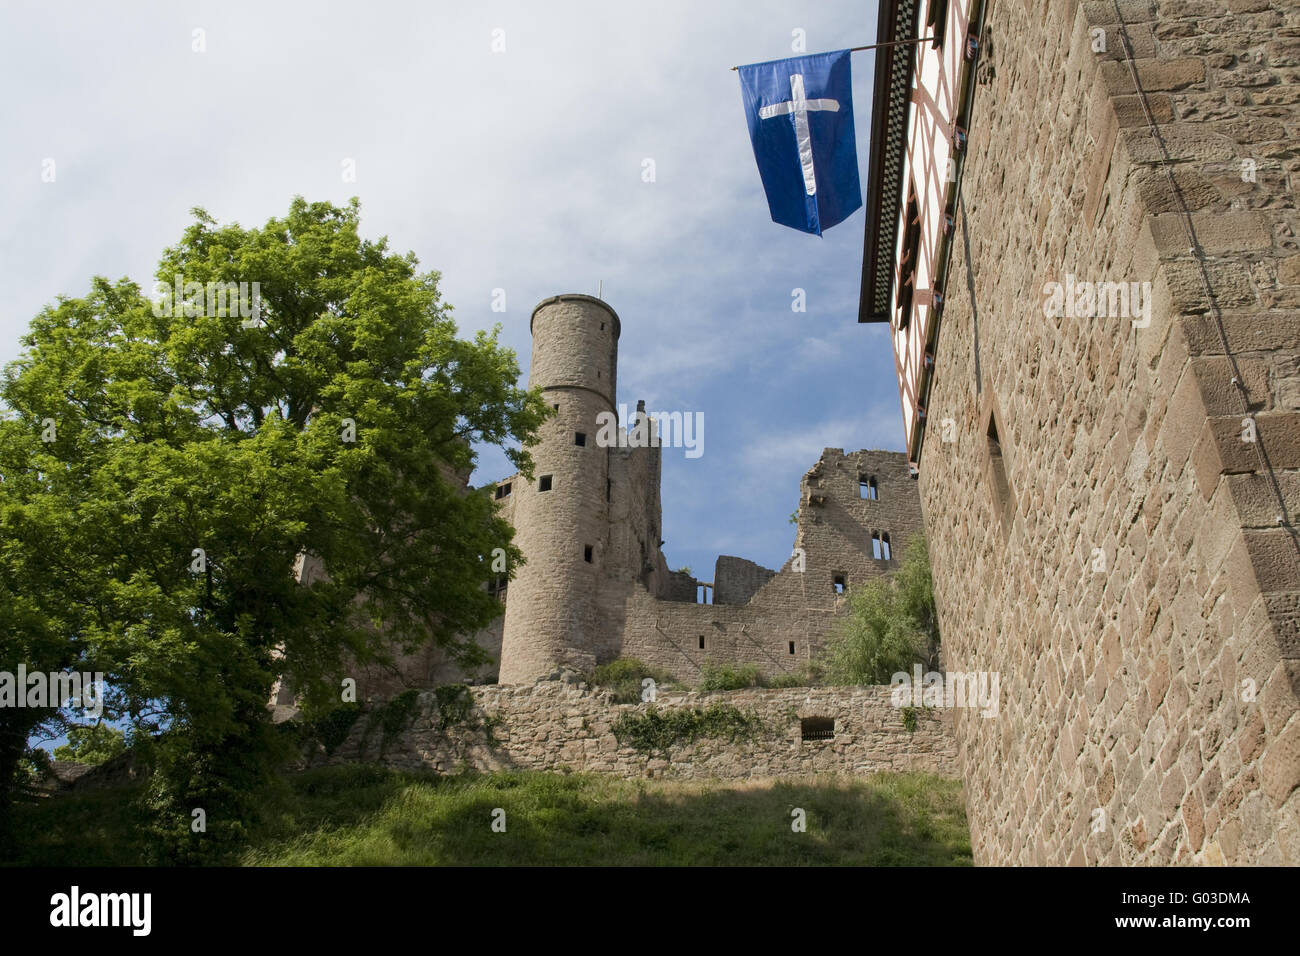 Hanstein castle with blue flag - Stock Image